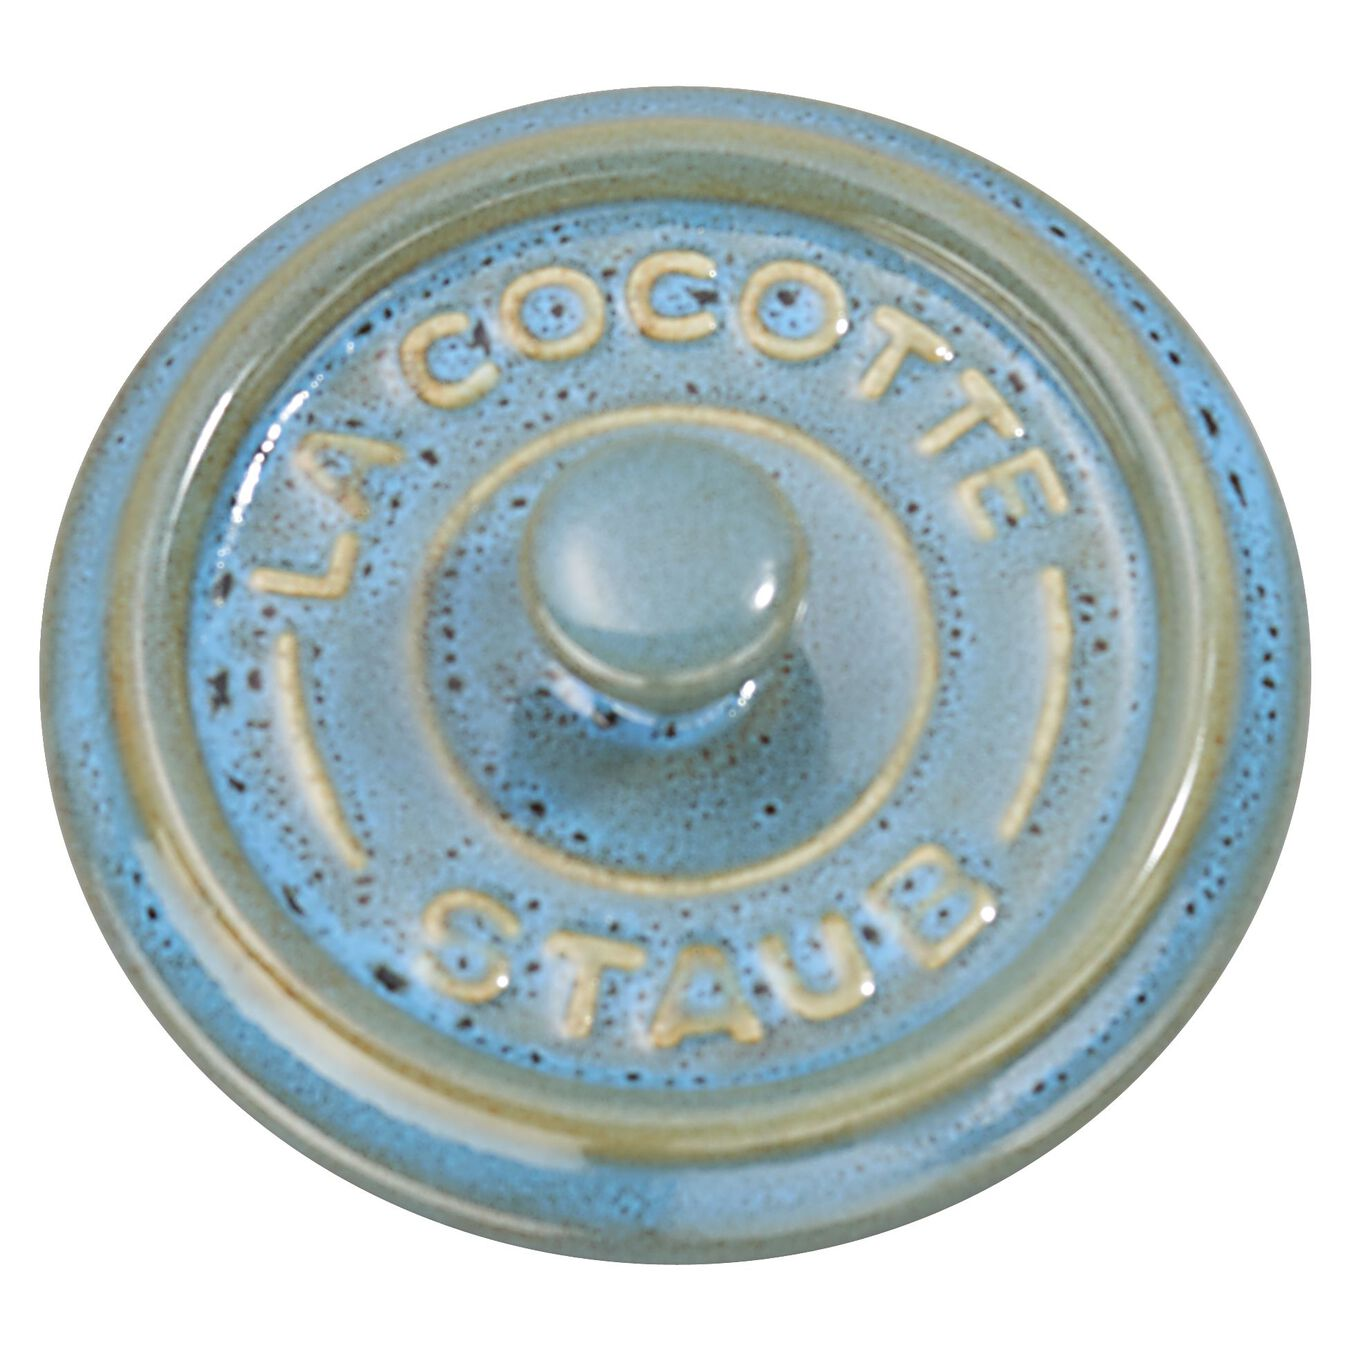 3-pc Mini Round Cocotte Set - Rustic Turquoise,,large 5